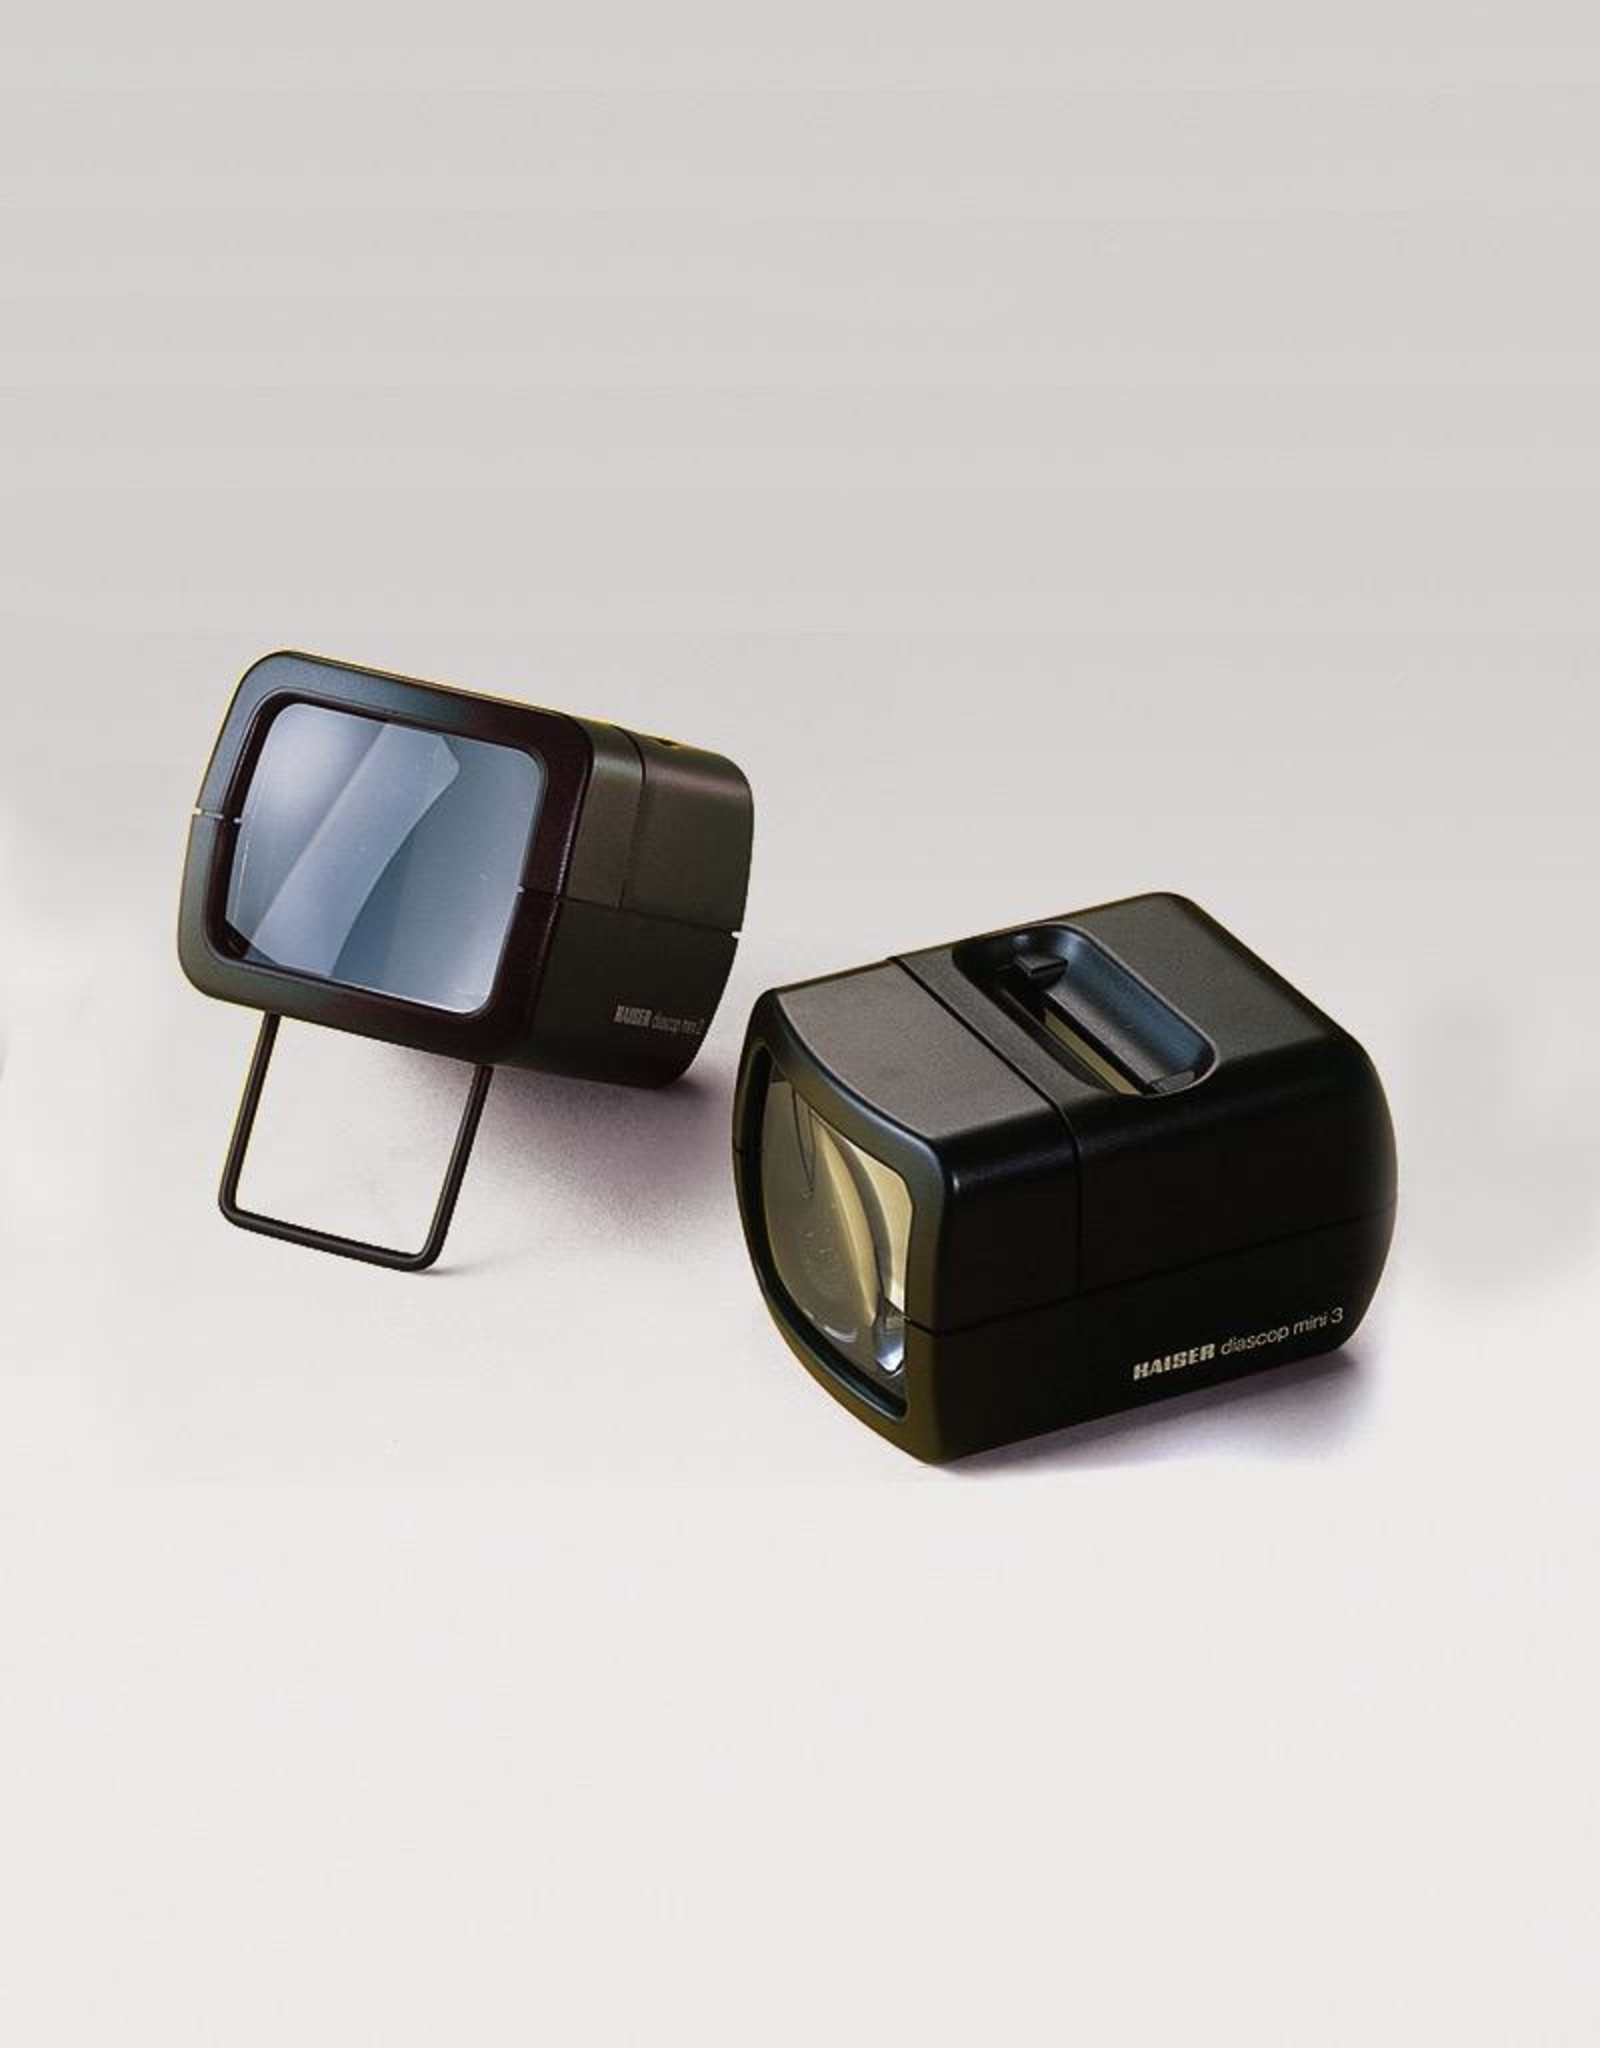 "Kaiser Kaiser ""diascop mini 3"" Slide Viewer"